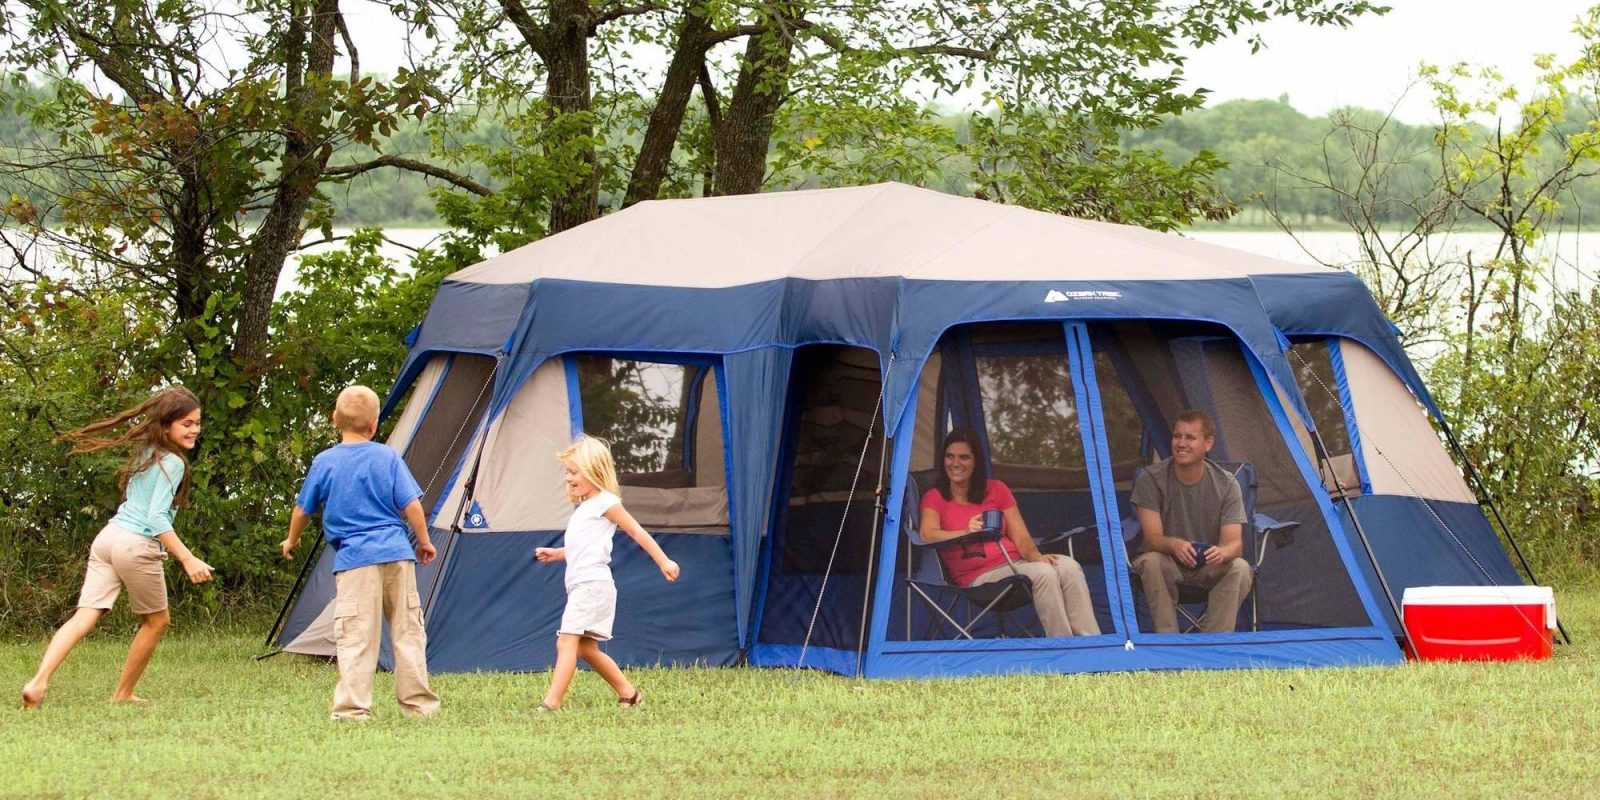 new product af3f0 dfef0 Walmart Camping Sale: tents from $29, accessories from $5 ...